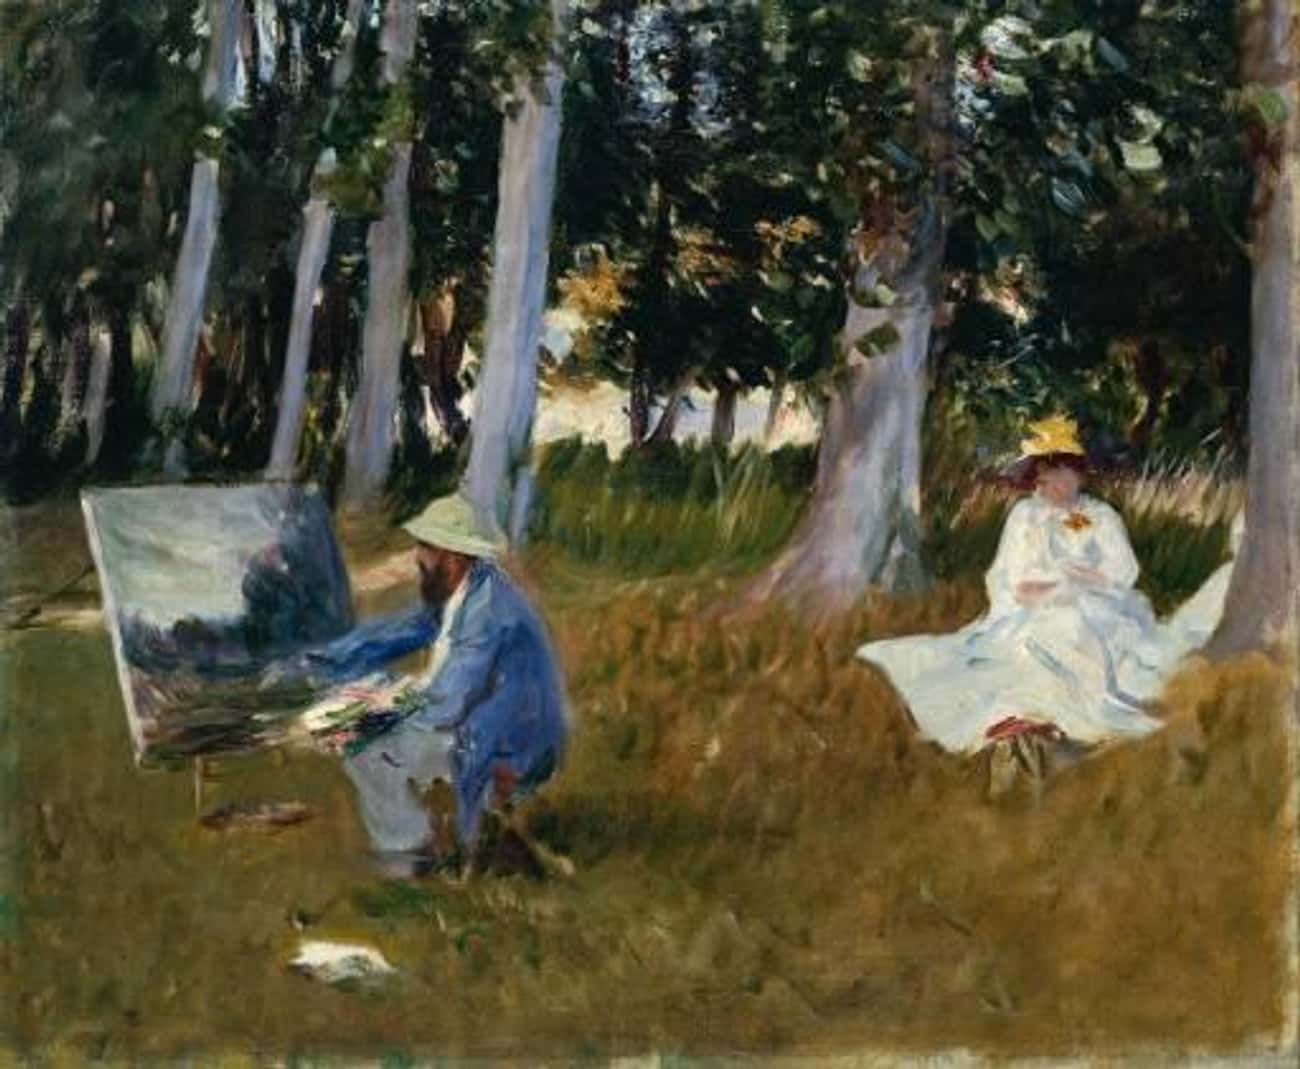 Claude Monet Painting by the E is listed (or ranked) 3 on the list Famous John Singer Sargent Paintings